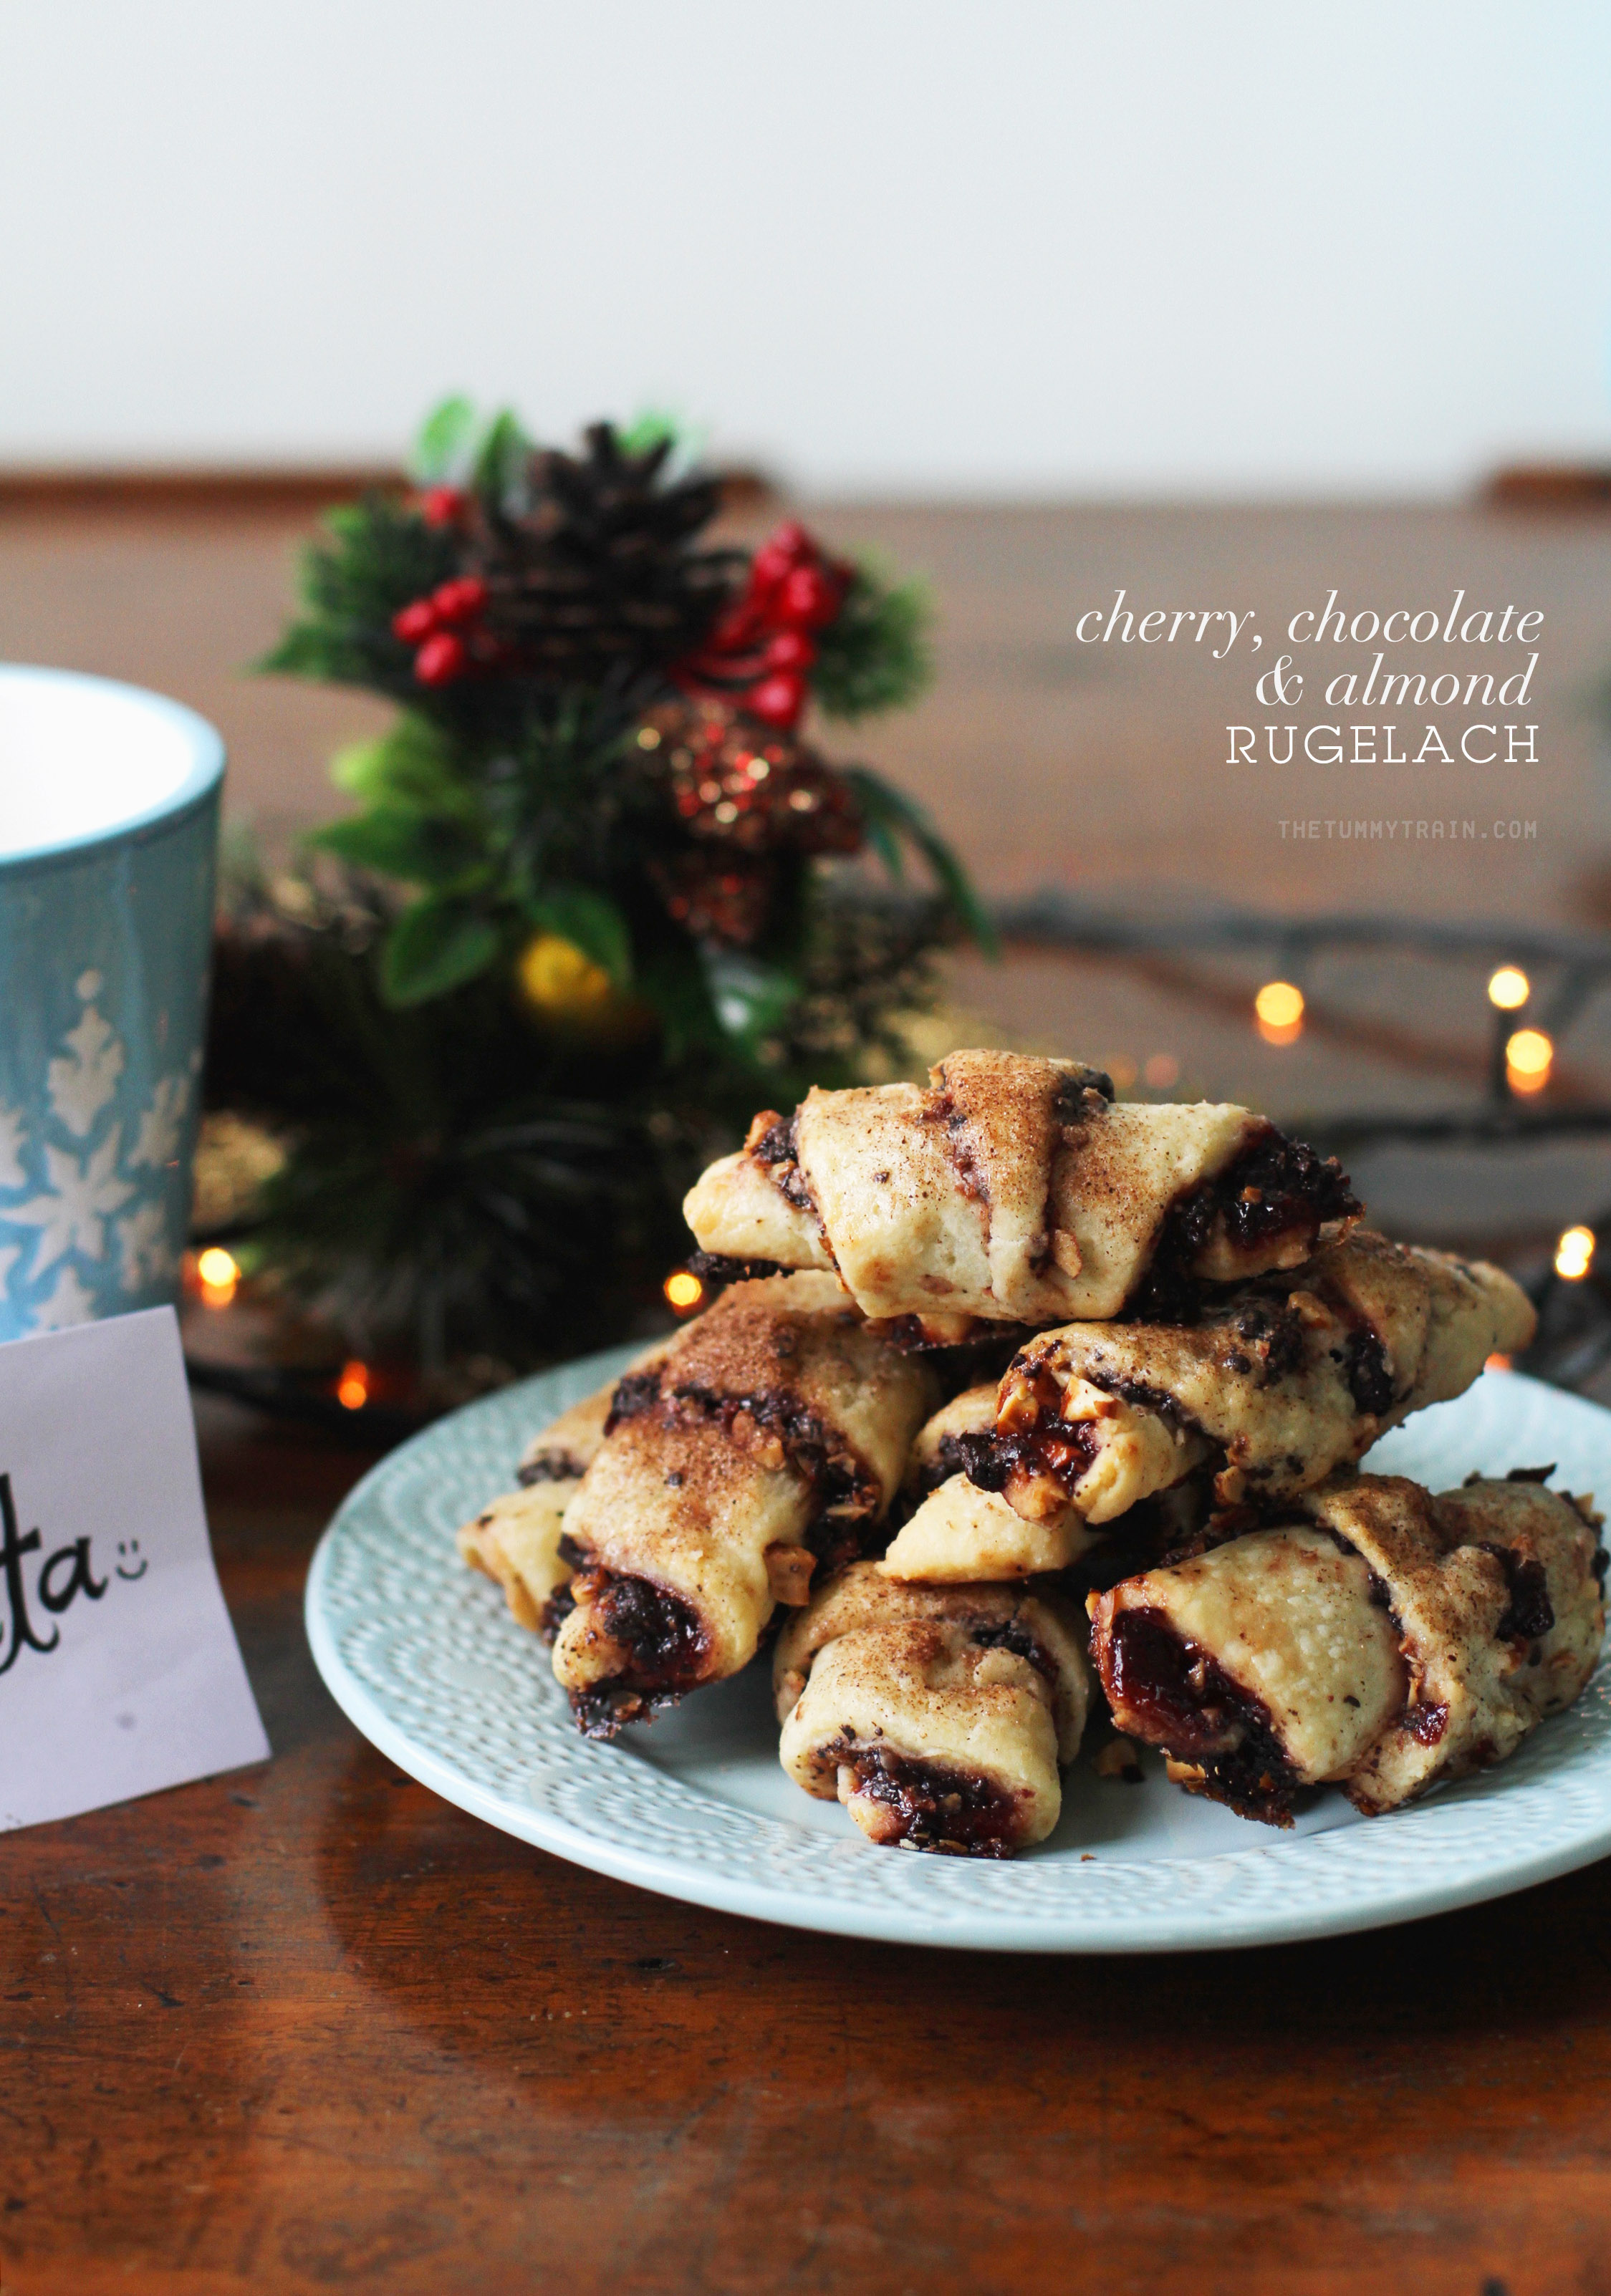 CCA Rugelach 1 1 - A different cookie for Santa this year with this Cherry, Chocolate, Almond Rugelach Recipe [VIDEO]